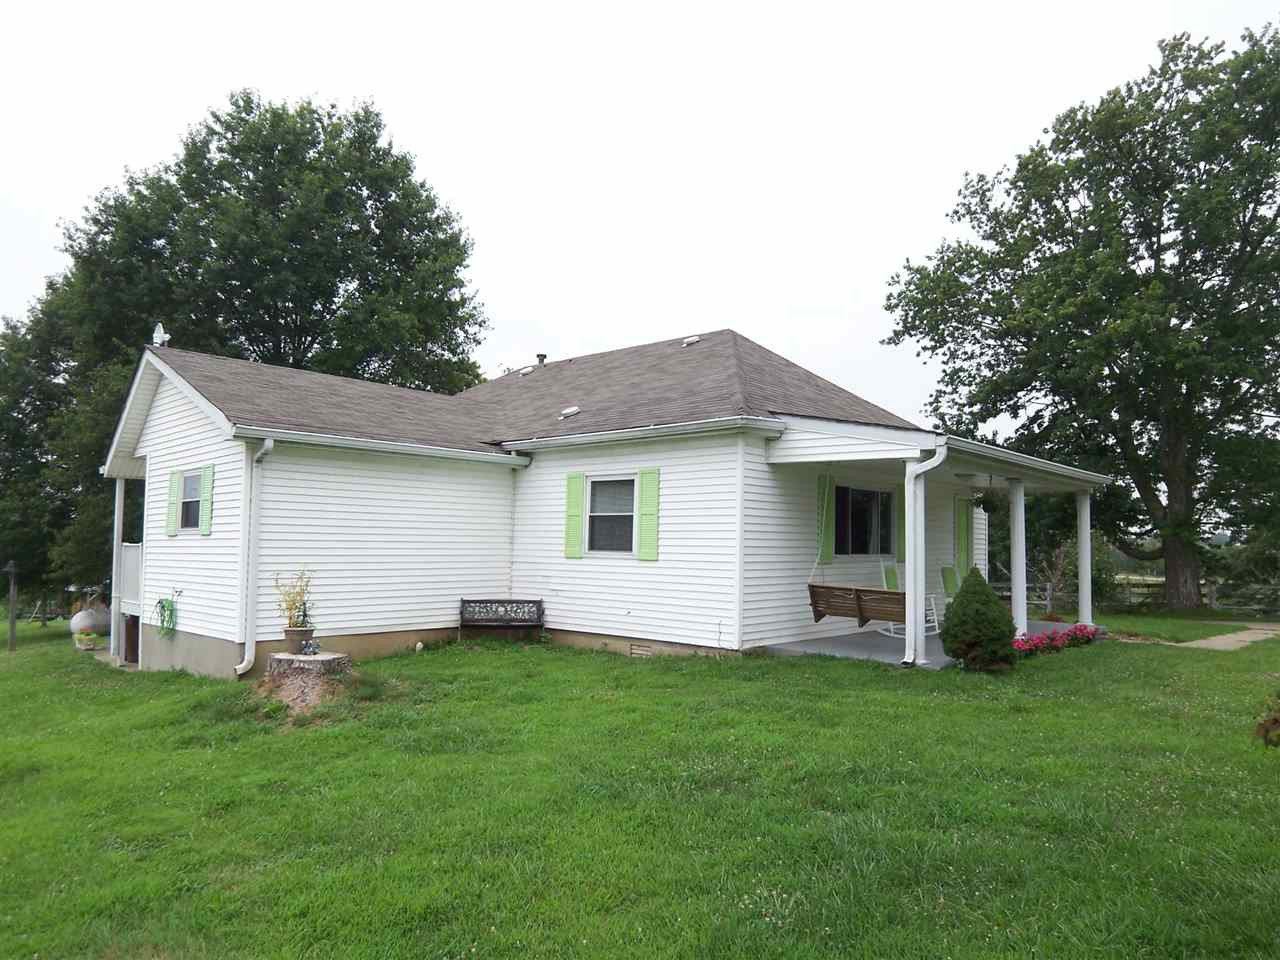 Photo 1 for 995 Eden Shale Rd Owenton, KY 40359